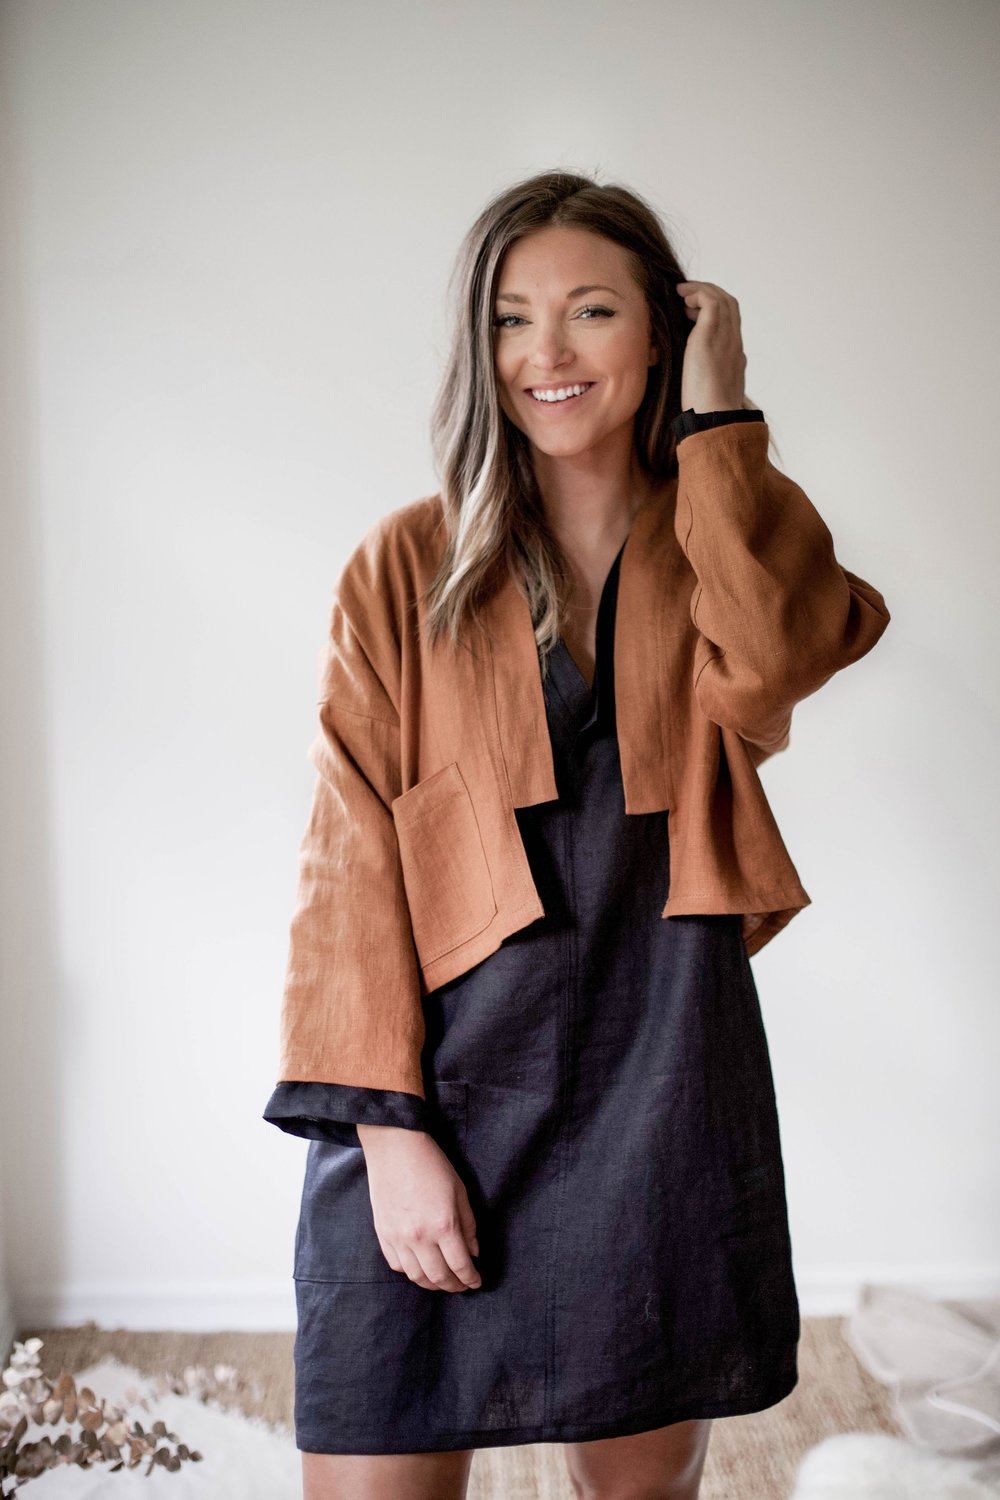 nomi-designs_ann-jacket_rust-colored-natural-linen-jacket_front-main.jpg